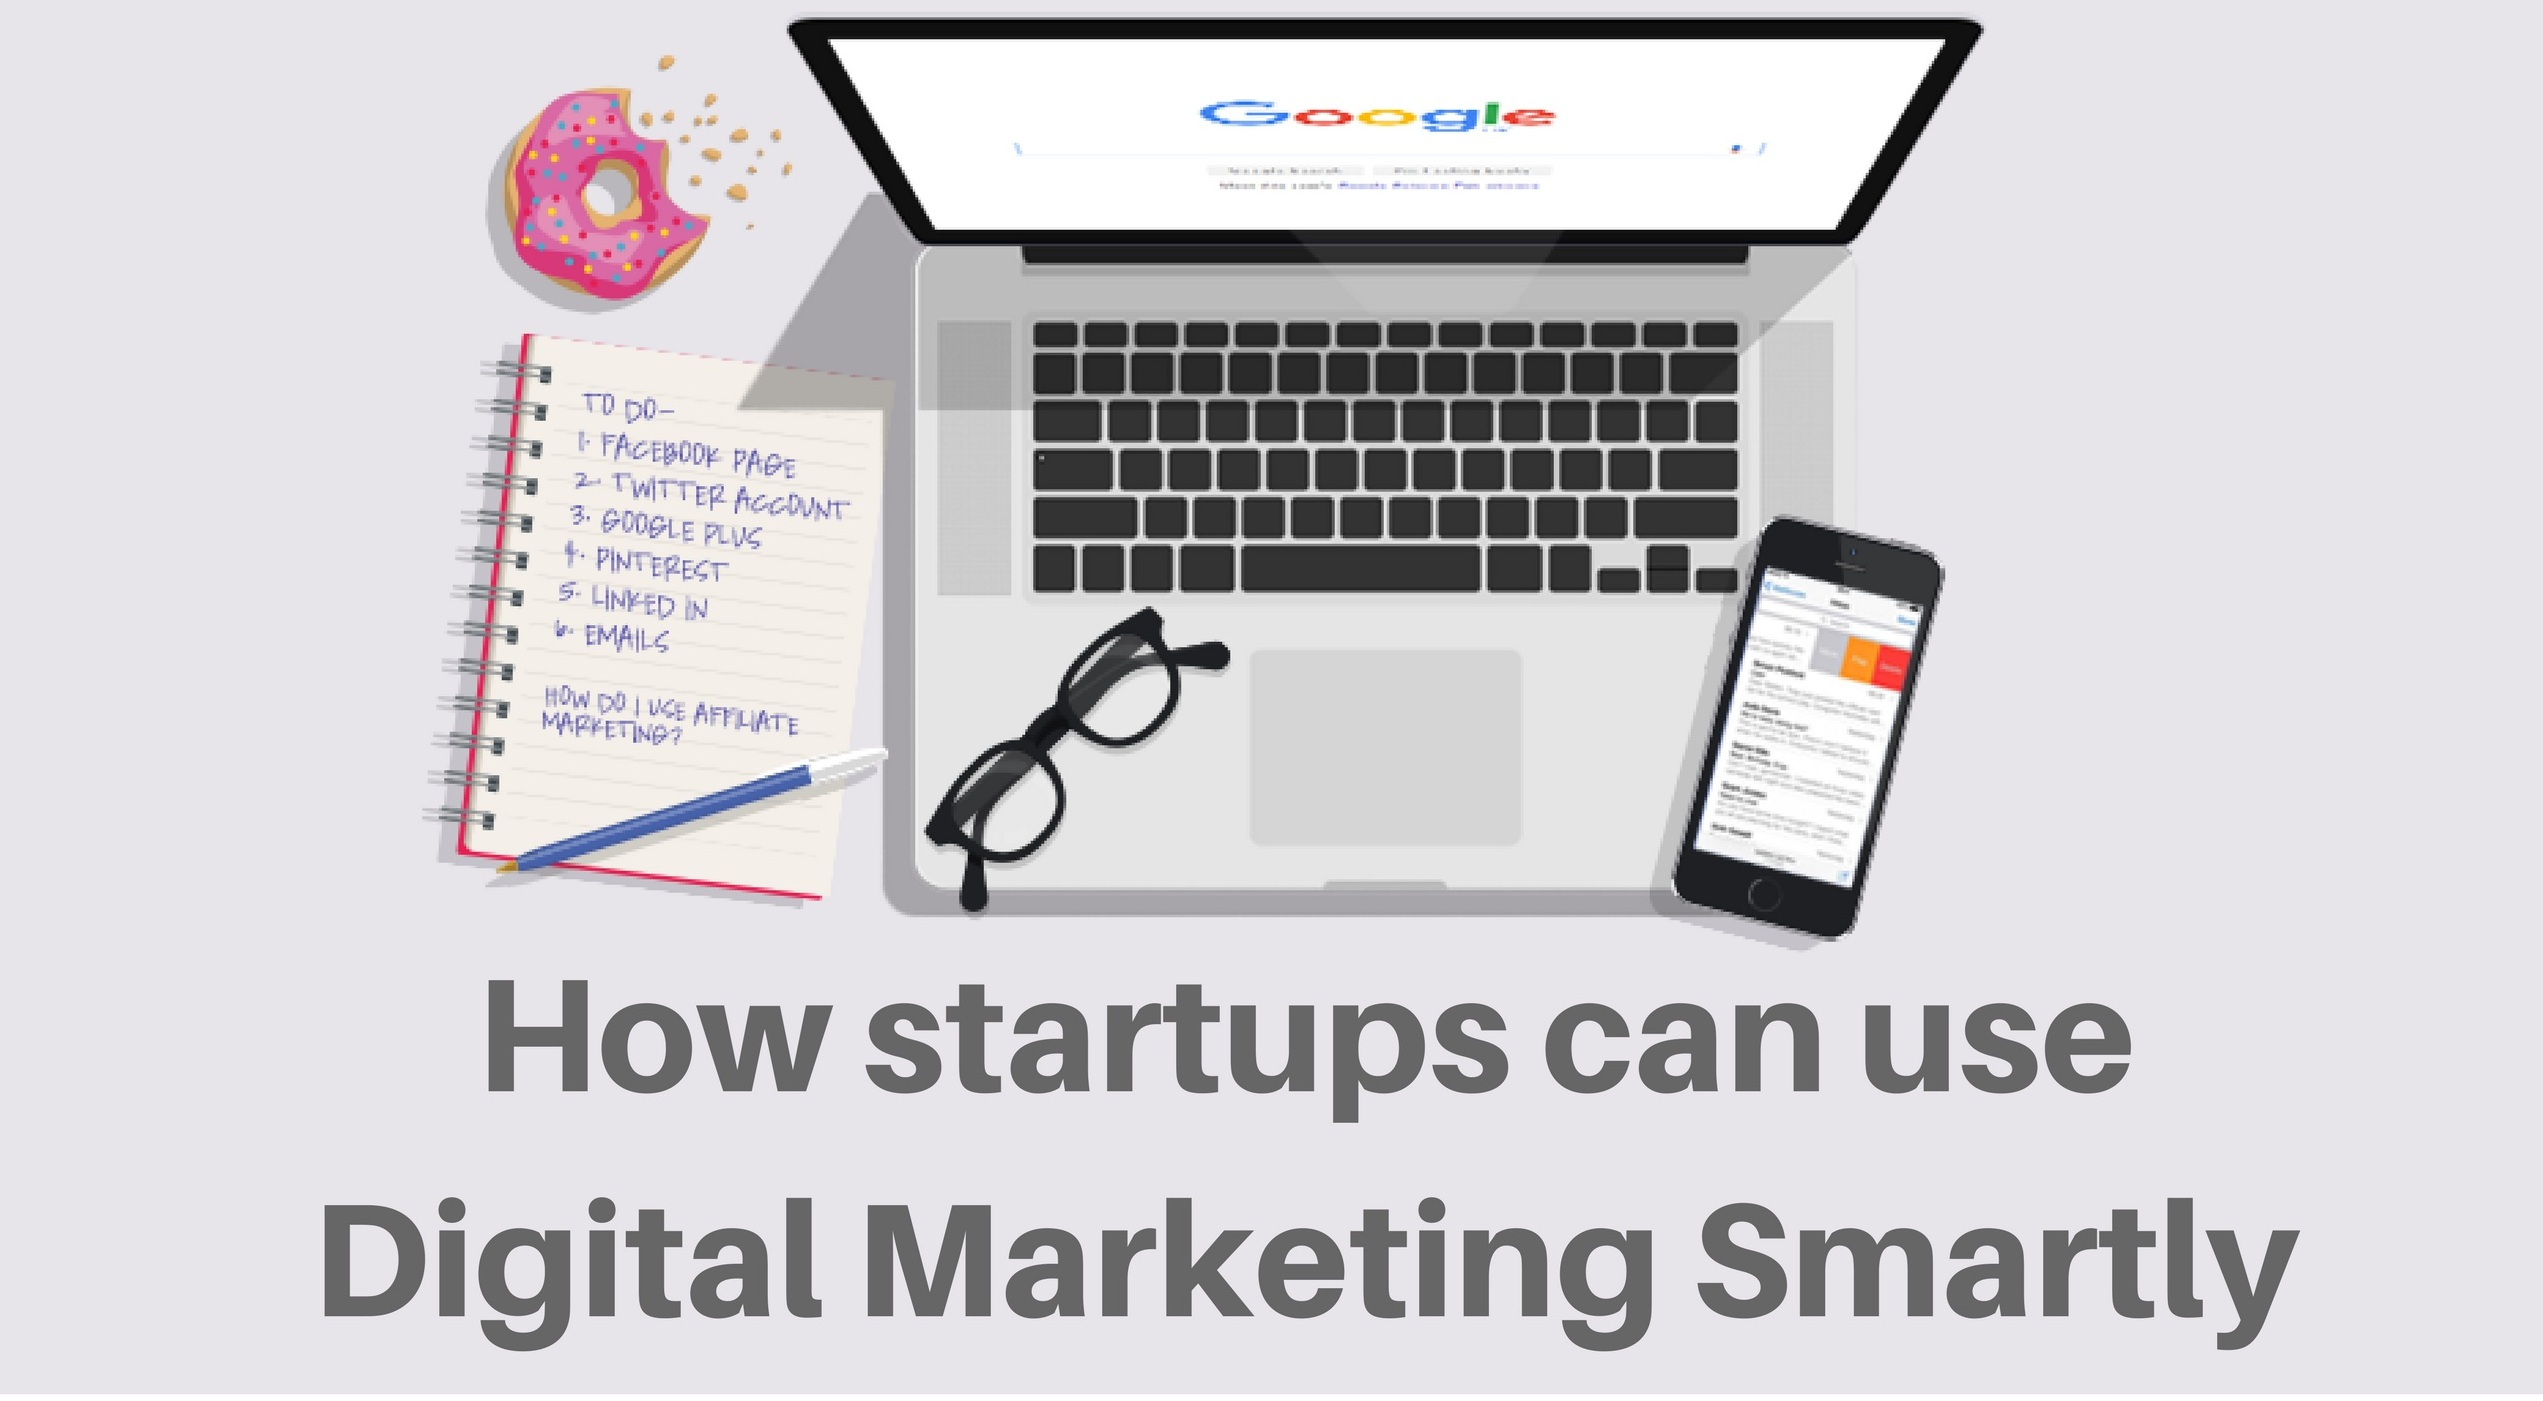 HOW STARUPS CAN USE DIGITAL MARKETING TO THEIR ADVANTAGE